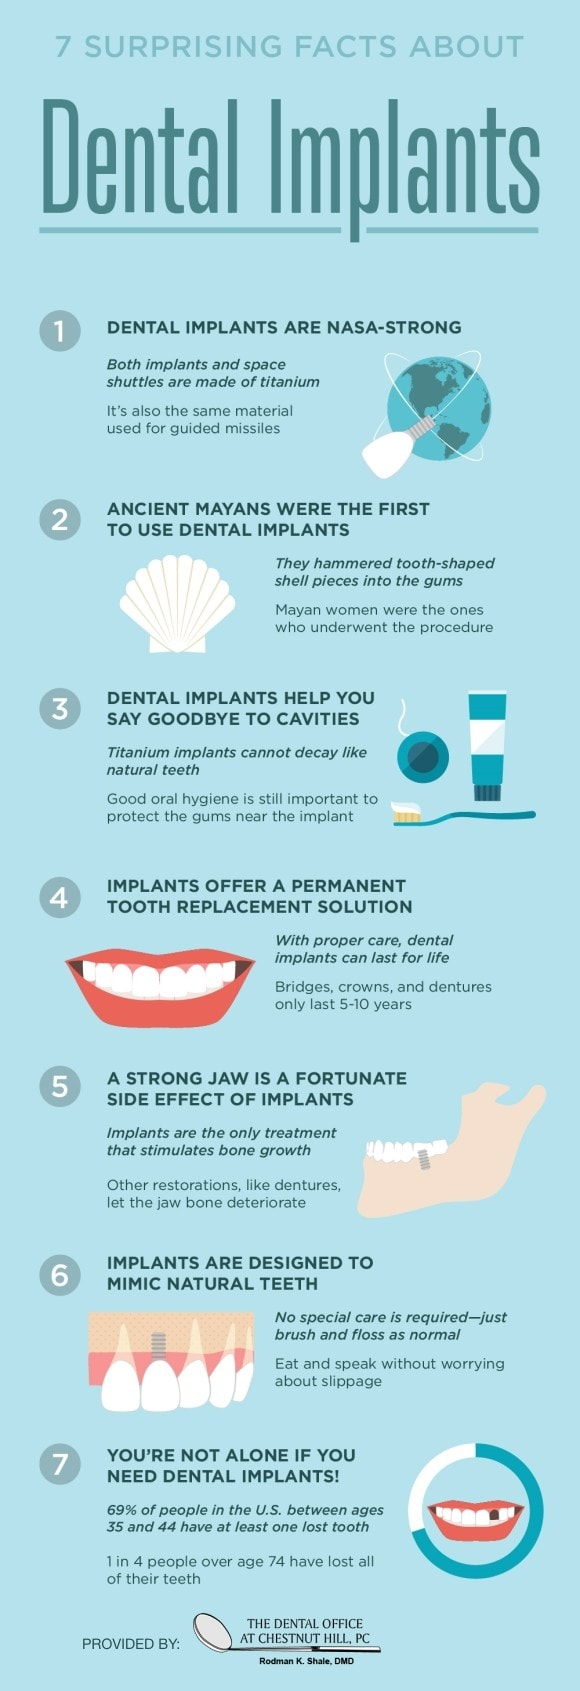 7 Surprising Facts About Dental Implants Infographic